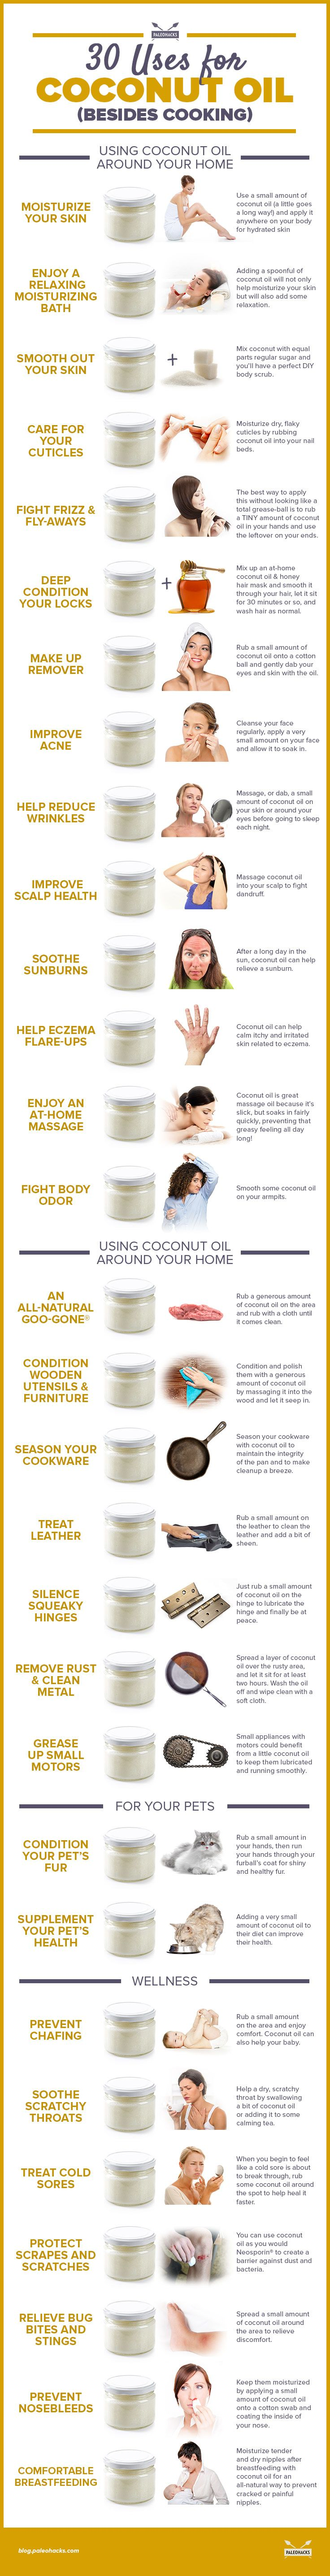 30-Uses-for-Coconut-Oil-infog.jpg